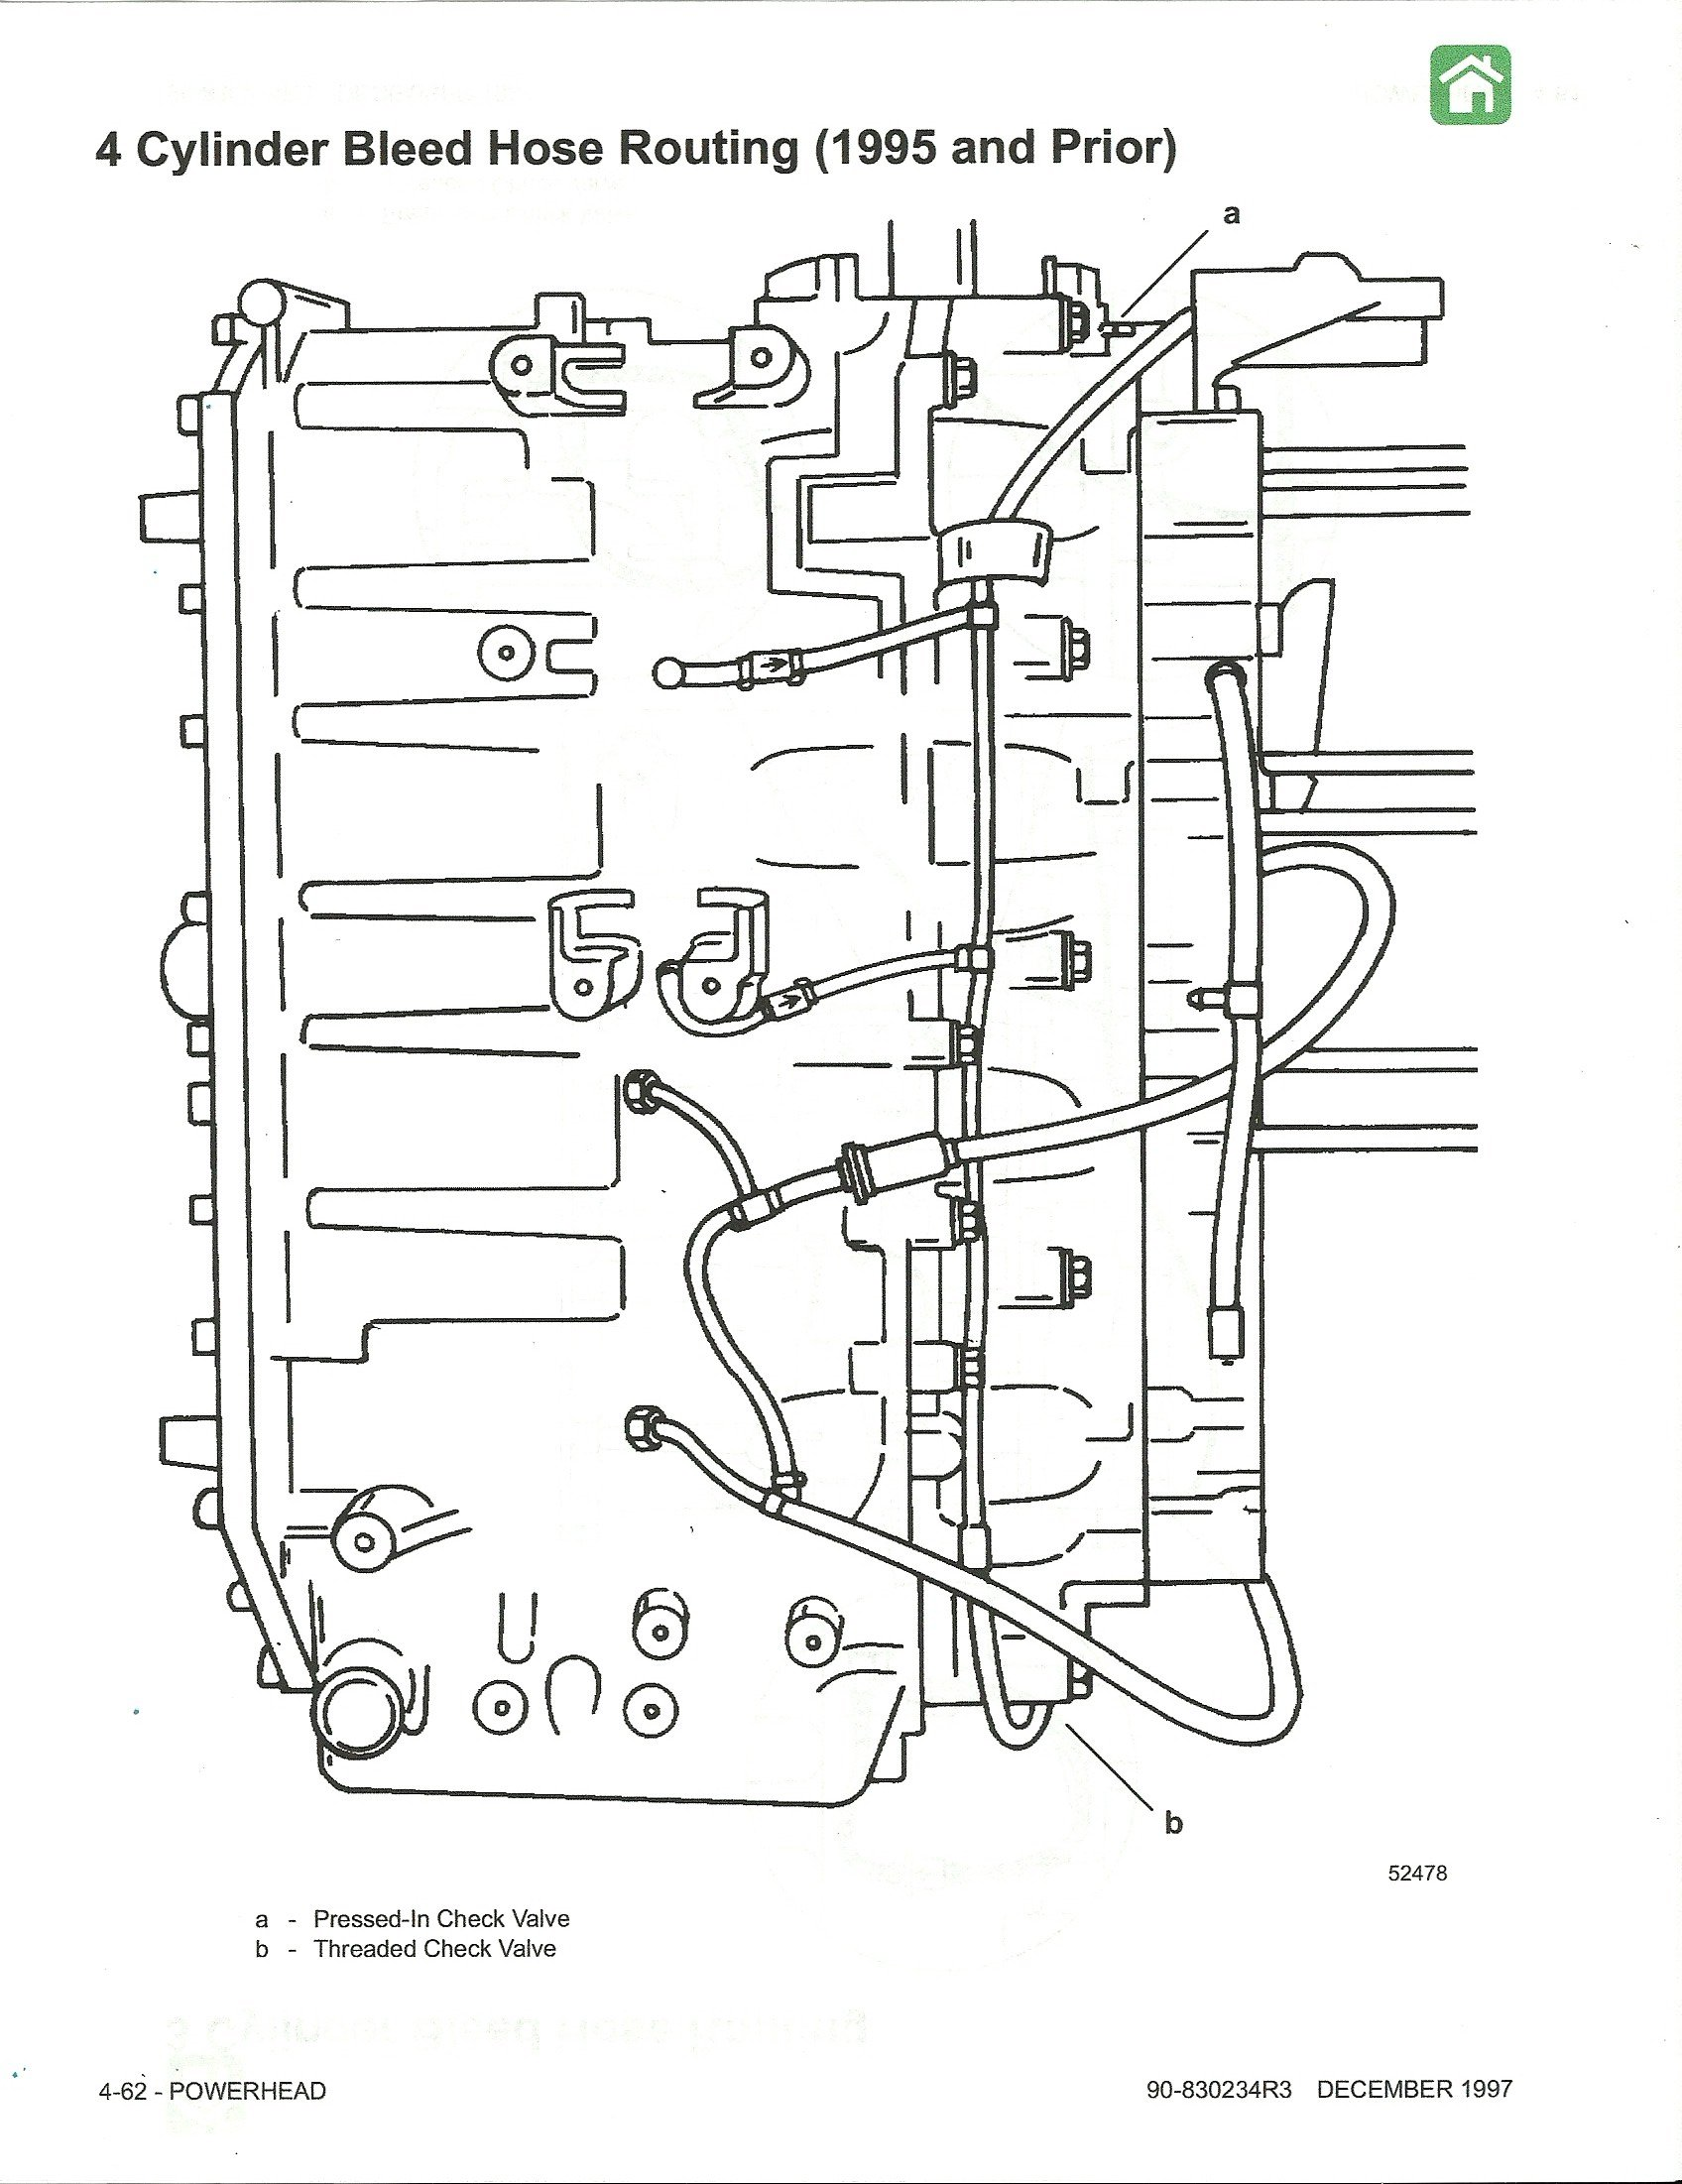 wiring diagram 1999 mercury outboard with 3v5oi Need Diagram Mercury 93 115hp Fuel Reciruation on Harley Davidson Fuel Pump Fuse Location moreover Stratos Boat Wiring Harness moreover 6hcxz 2010 60 Hp Mercury Big Foot 4 Stroke Engine likewise 8a62z Cant Select Defrost 98 Avalon likewise Virago Hitachi Carburetors.